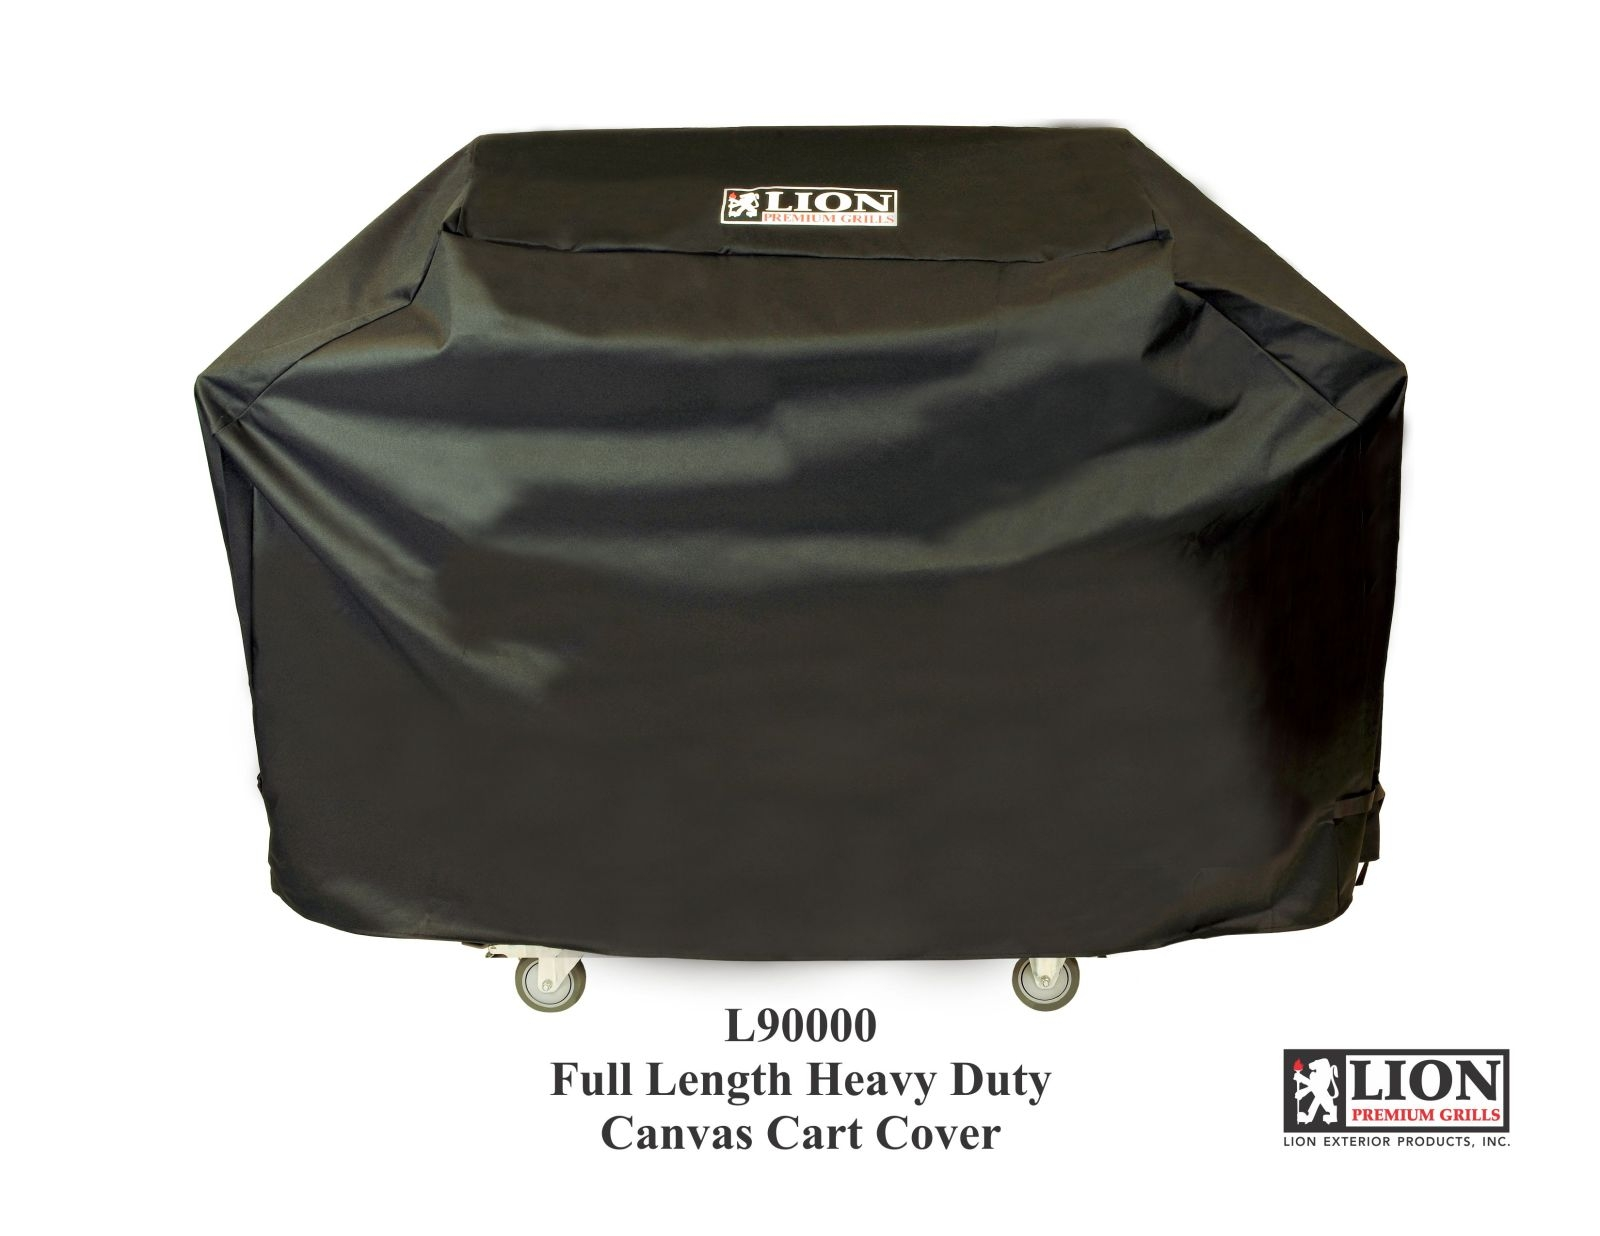 L90000 Canvas Cart Cover